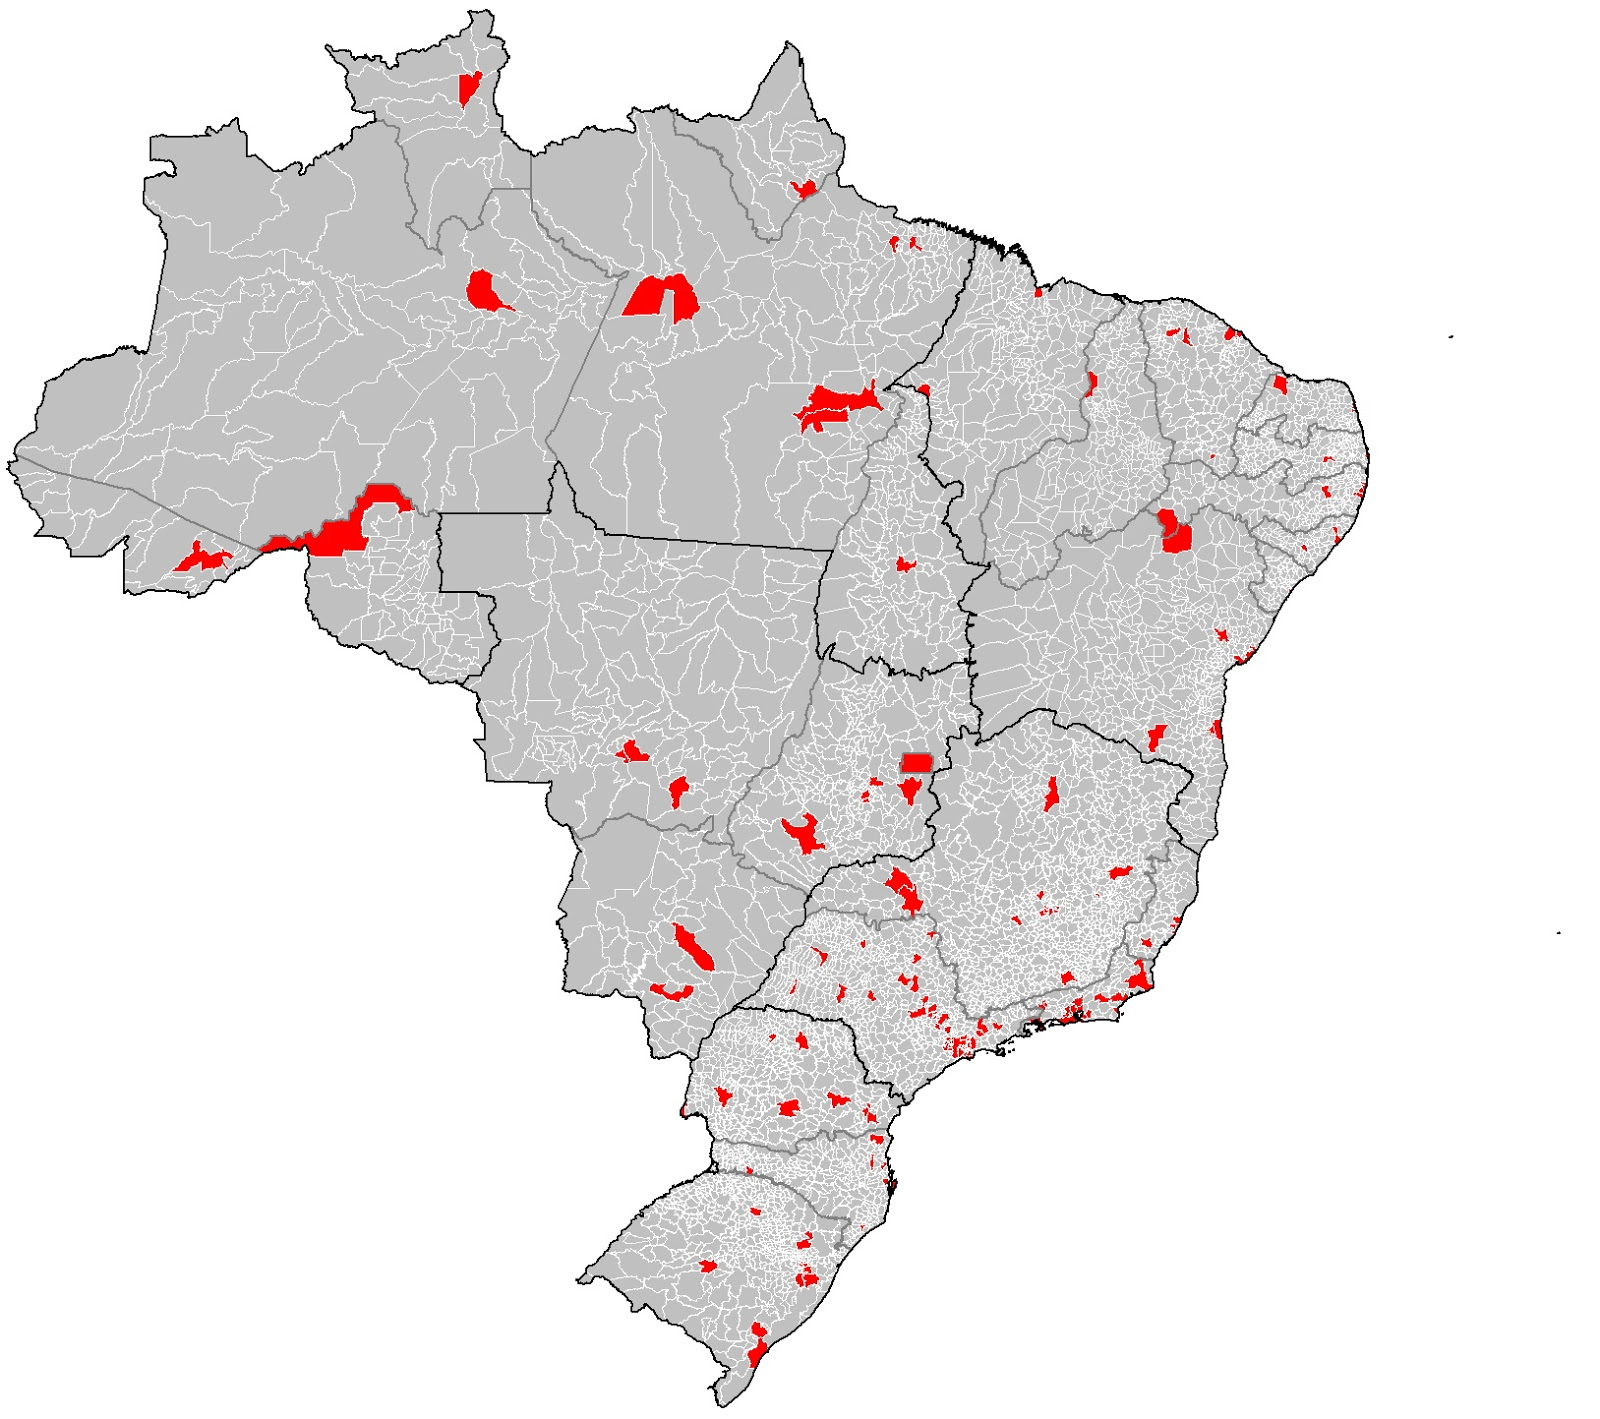 Half the population of Brazil lives in the blue shaded areas